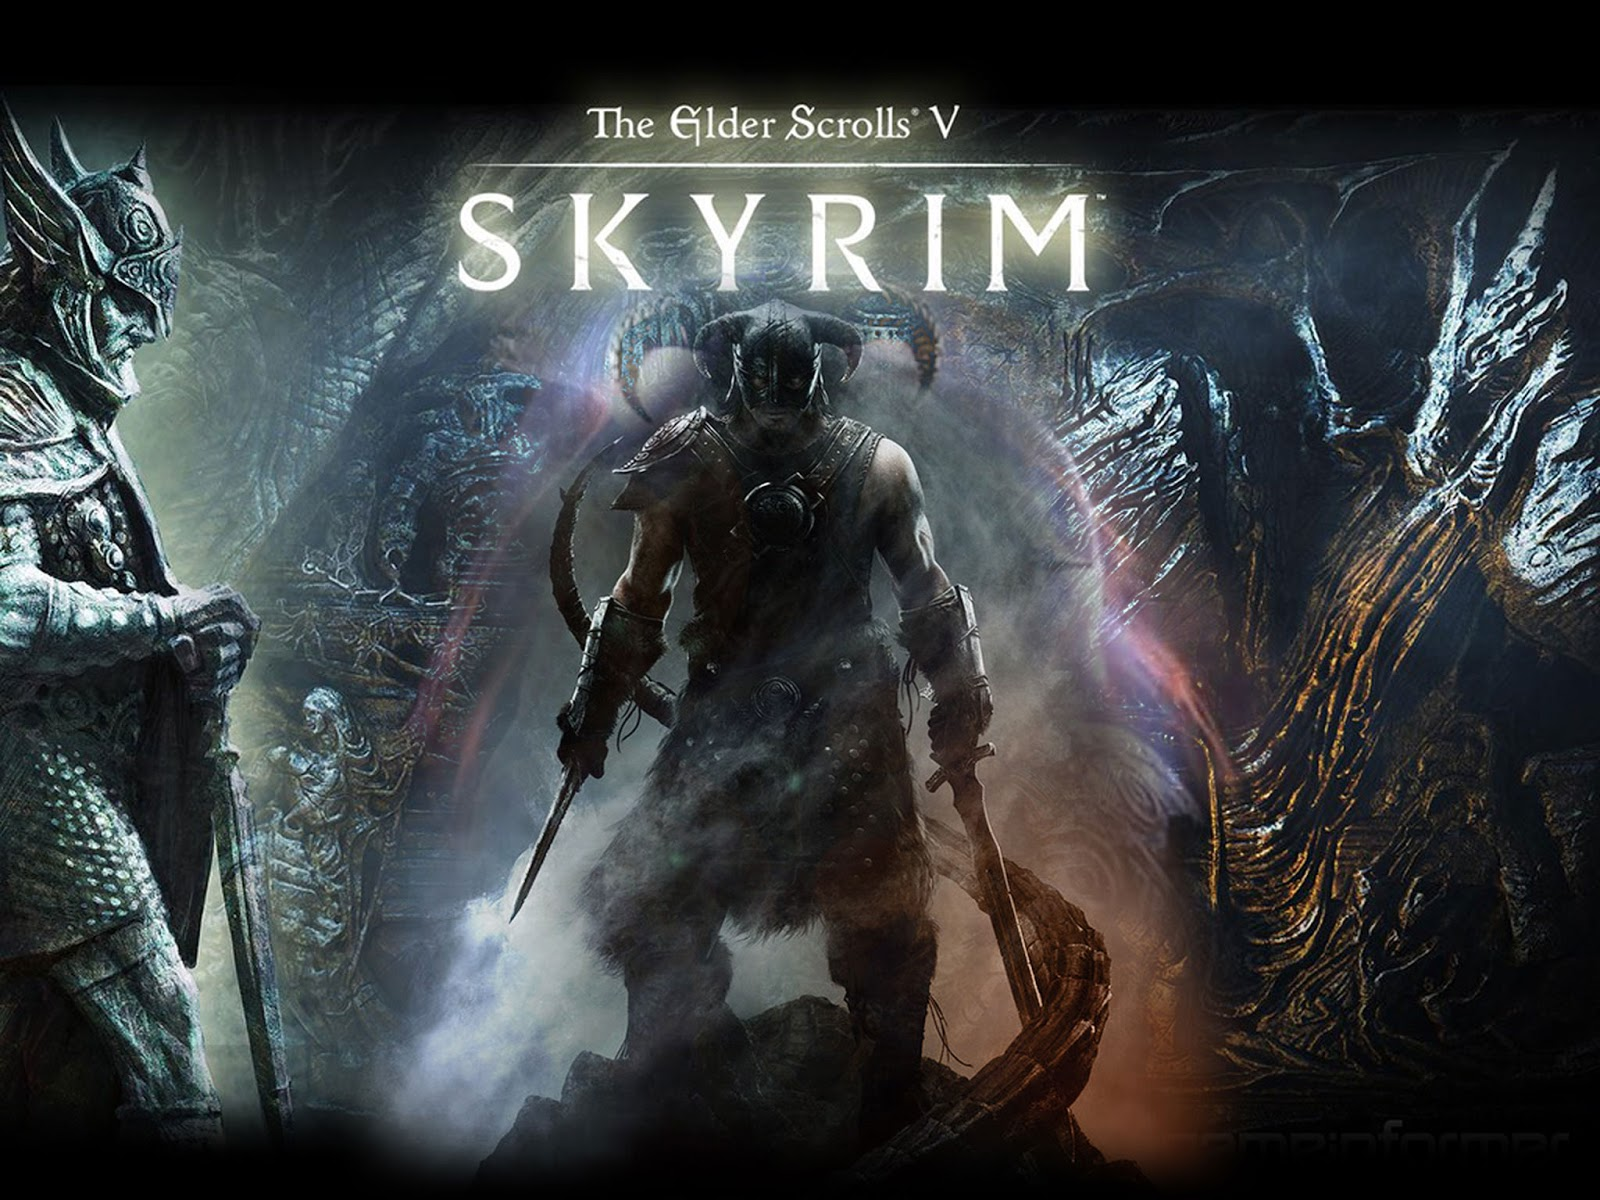 The Elder Scrolls V: Skyrim pc game